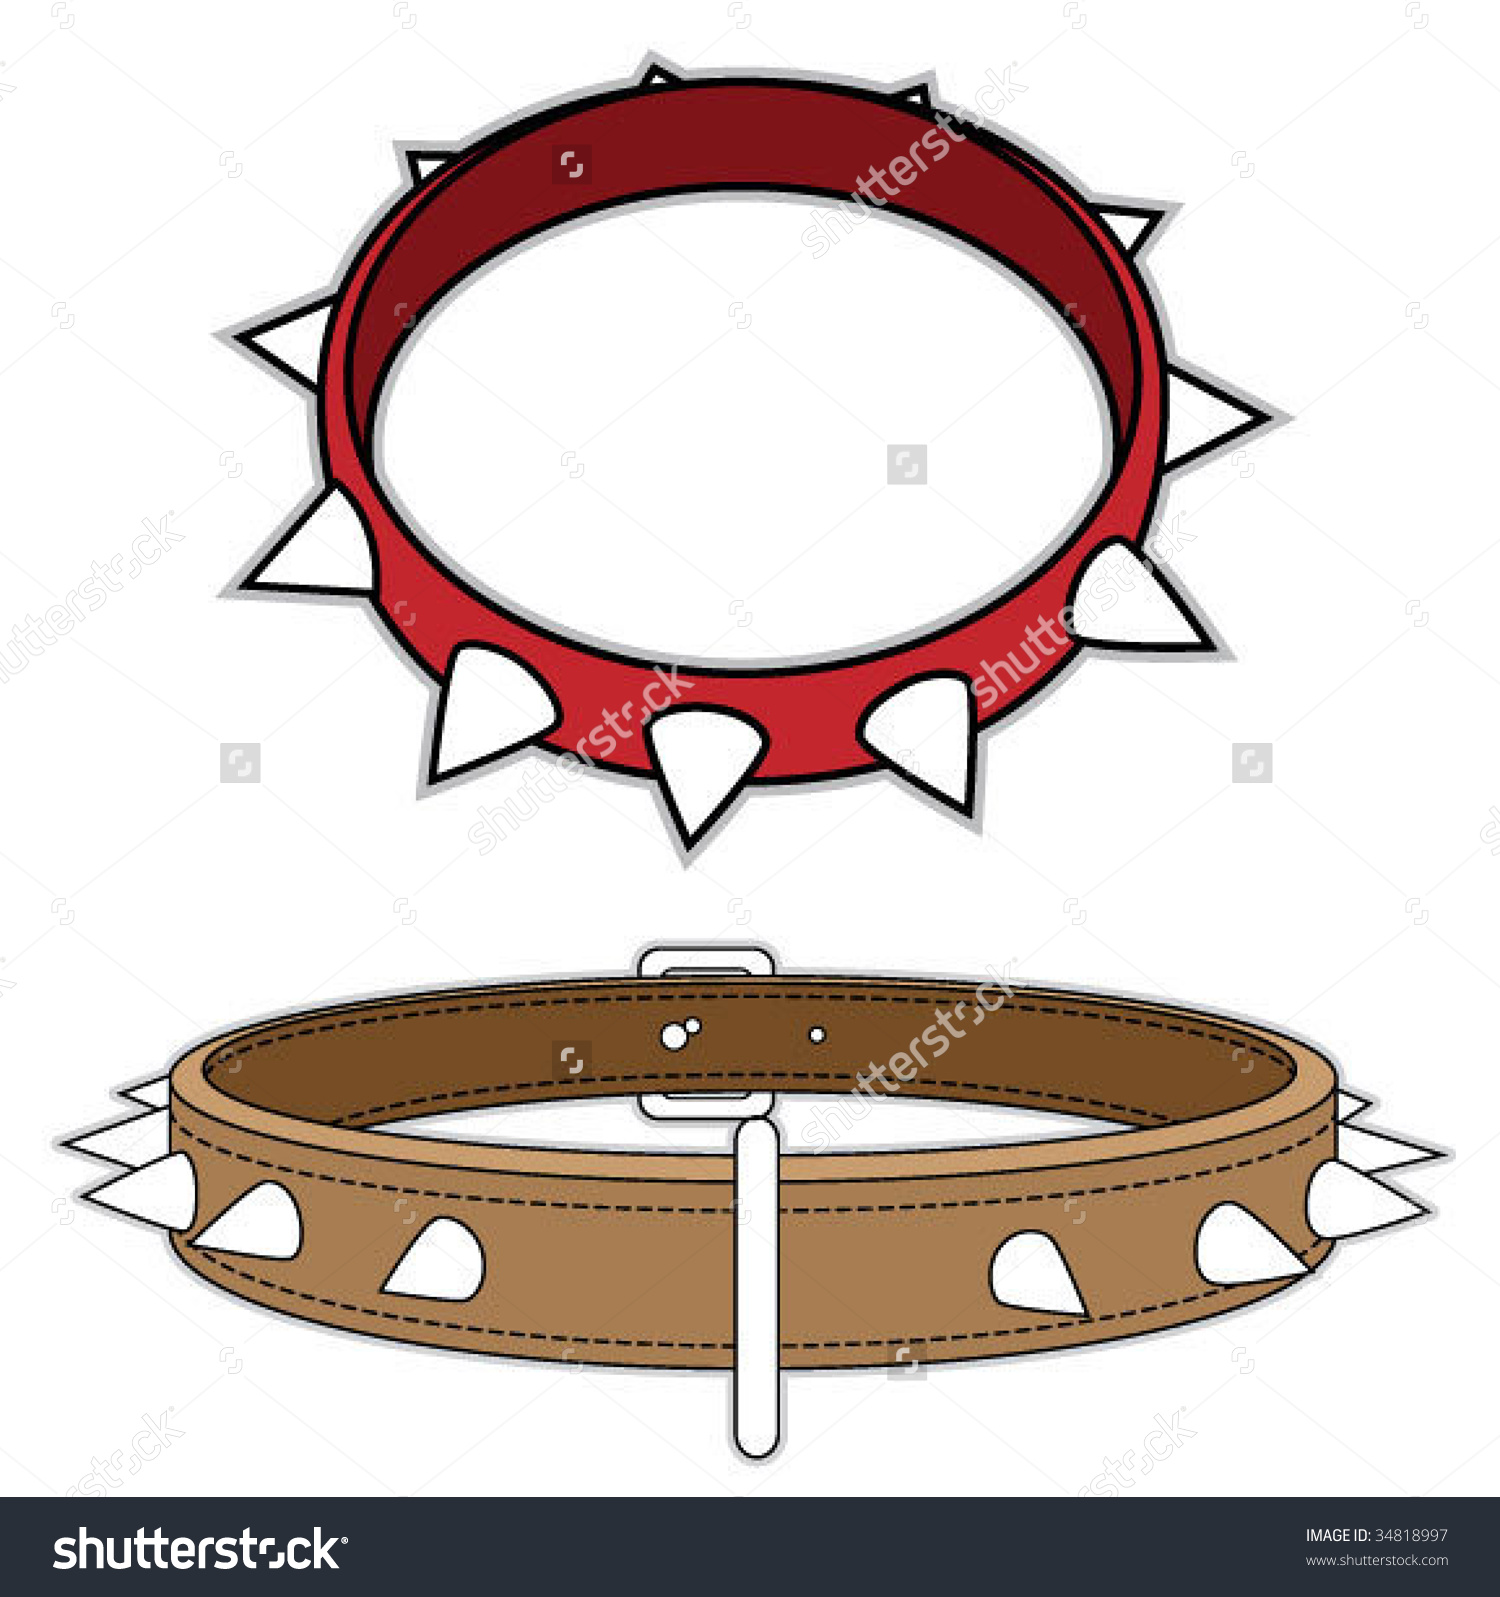 Spike dog collar clipart.